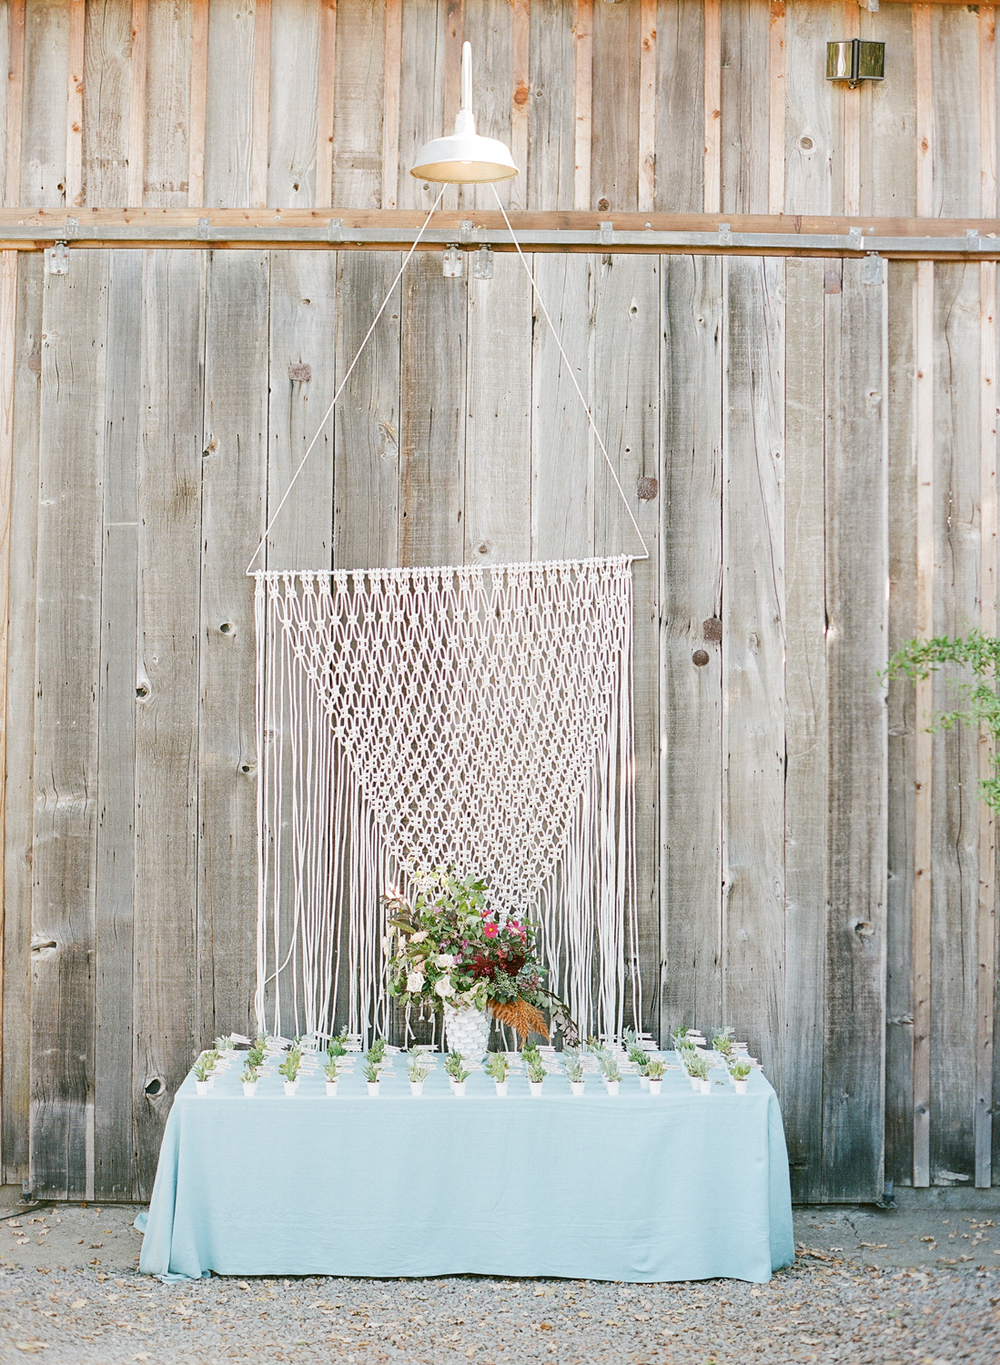 A handmade macrame backdrop hangs behind the place card table; photo by Sylvie Gil